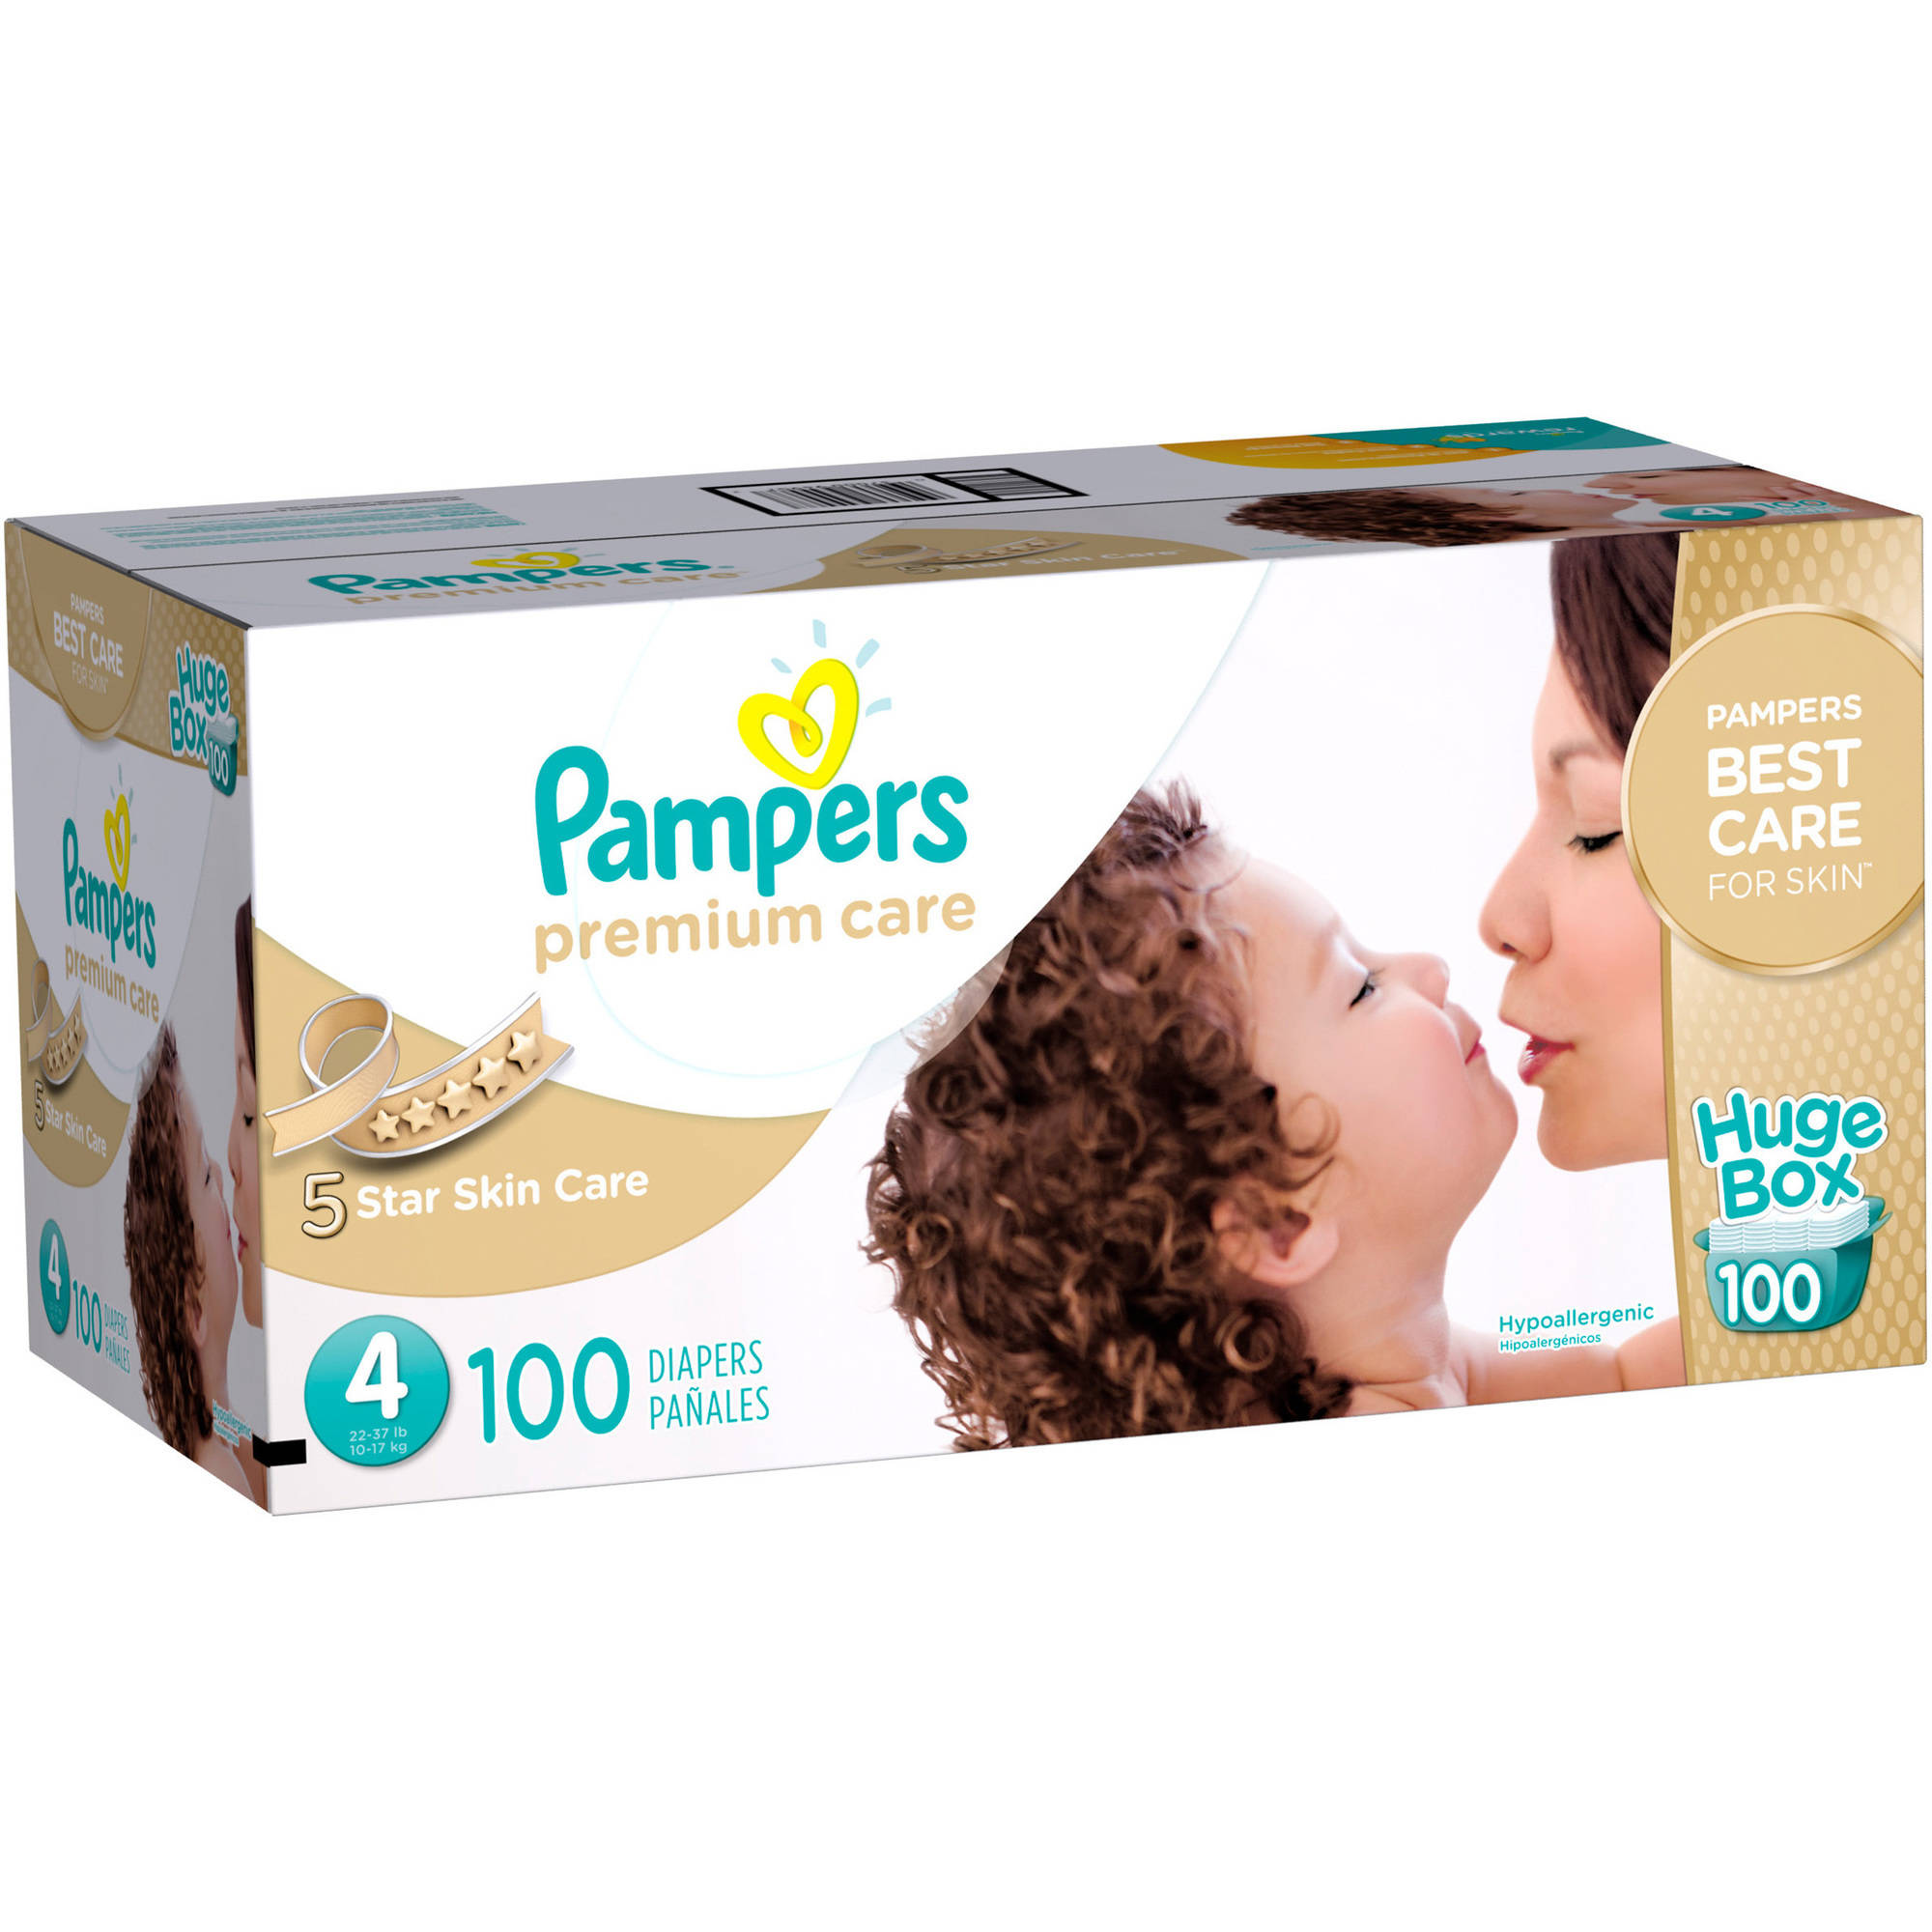 Pampers Premium Care Disposable Diapers, Size 4 (Choose Diaper Count)